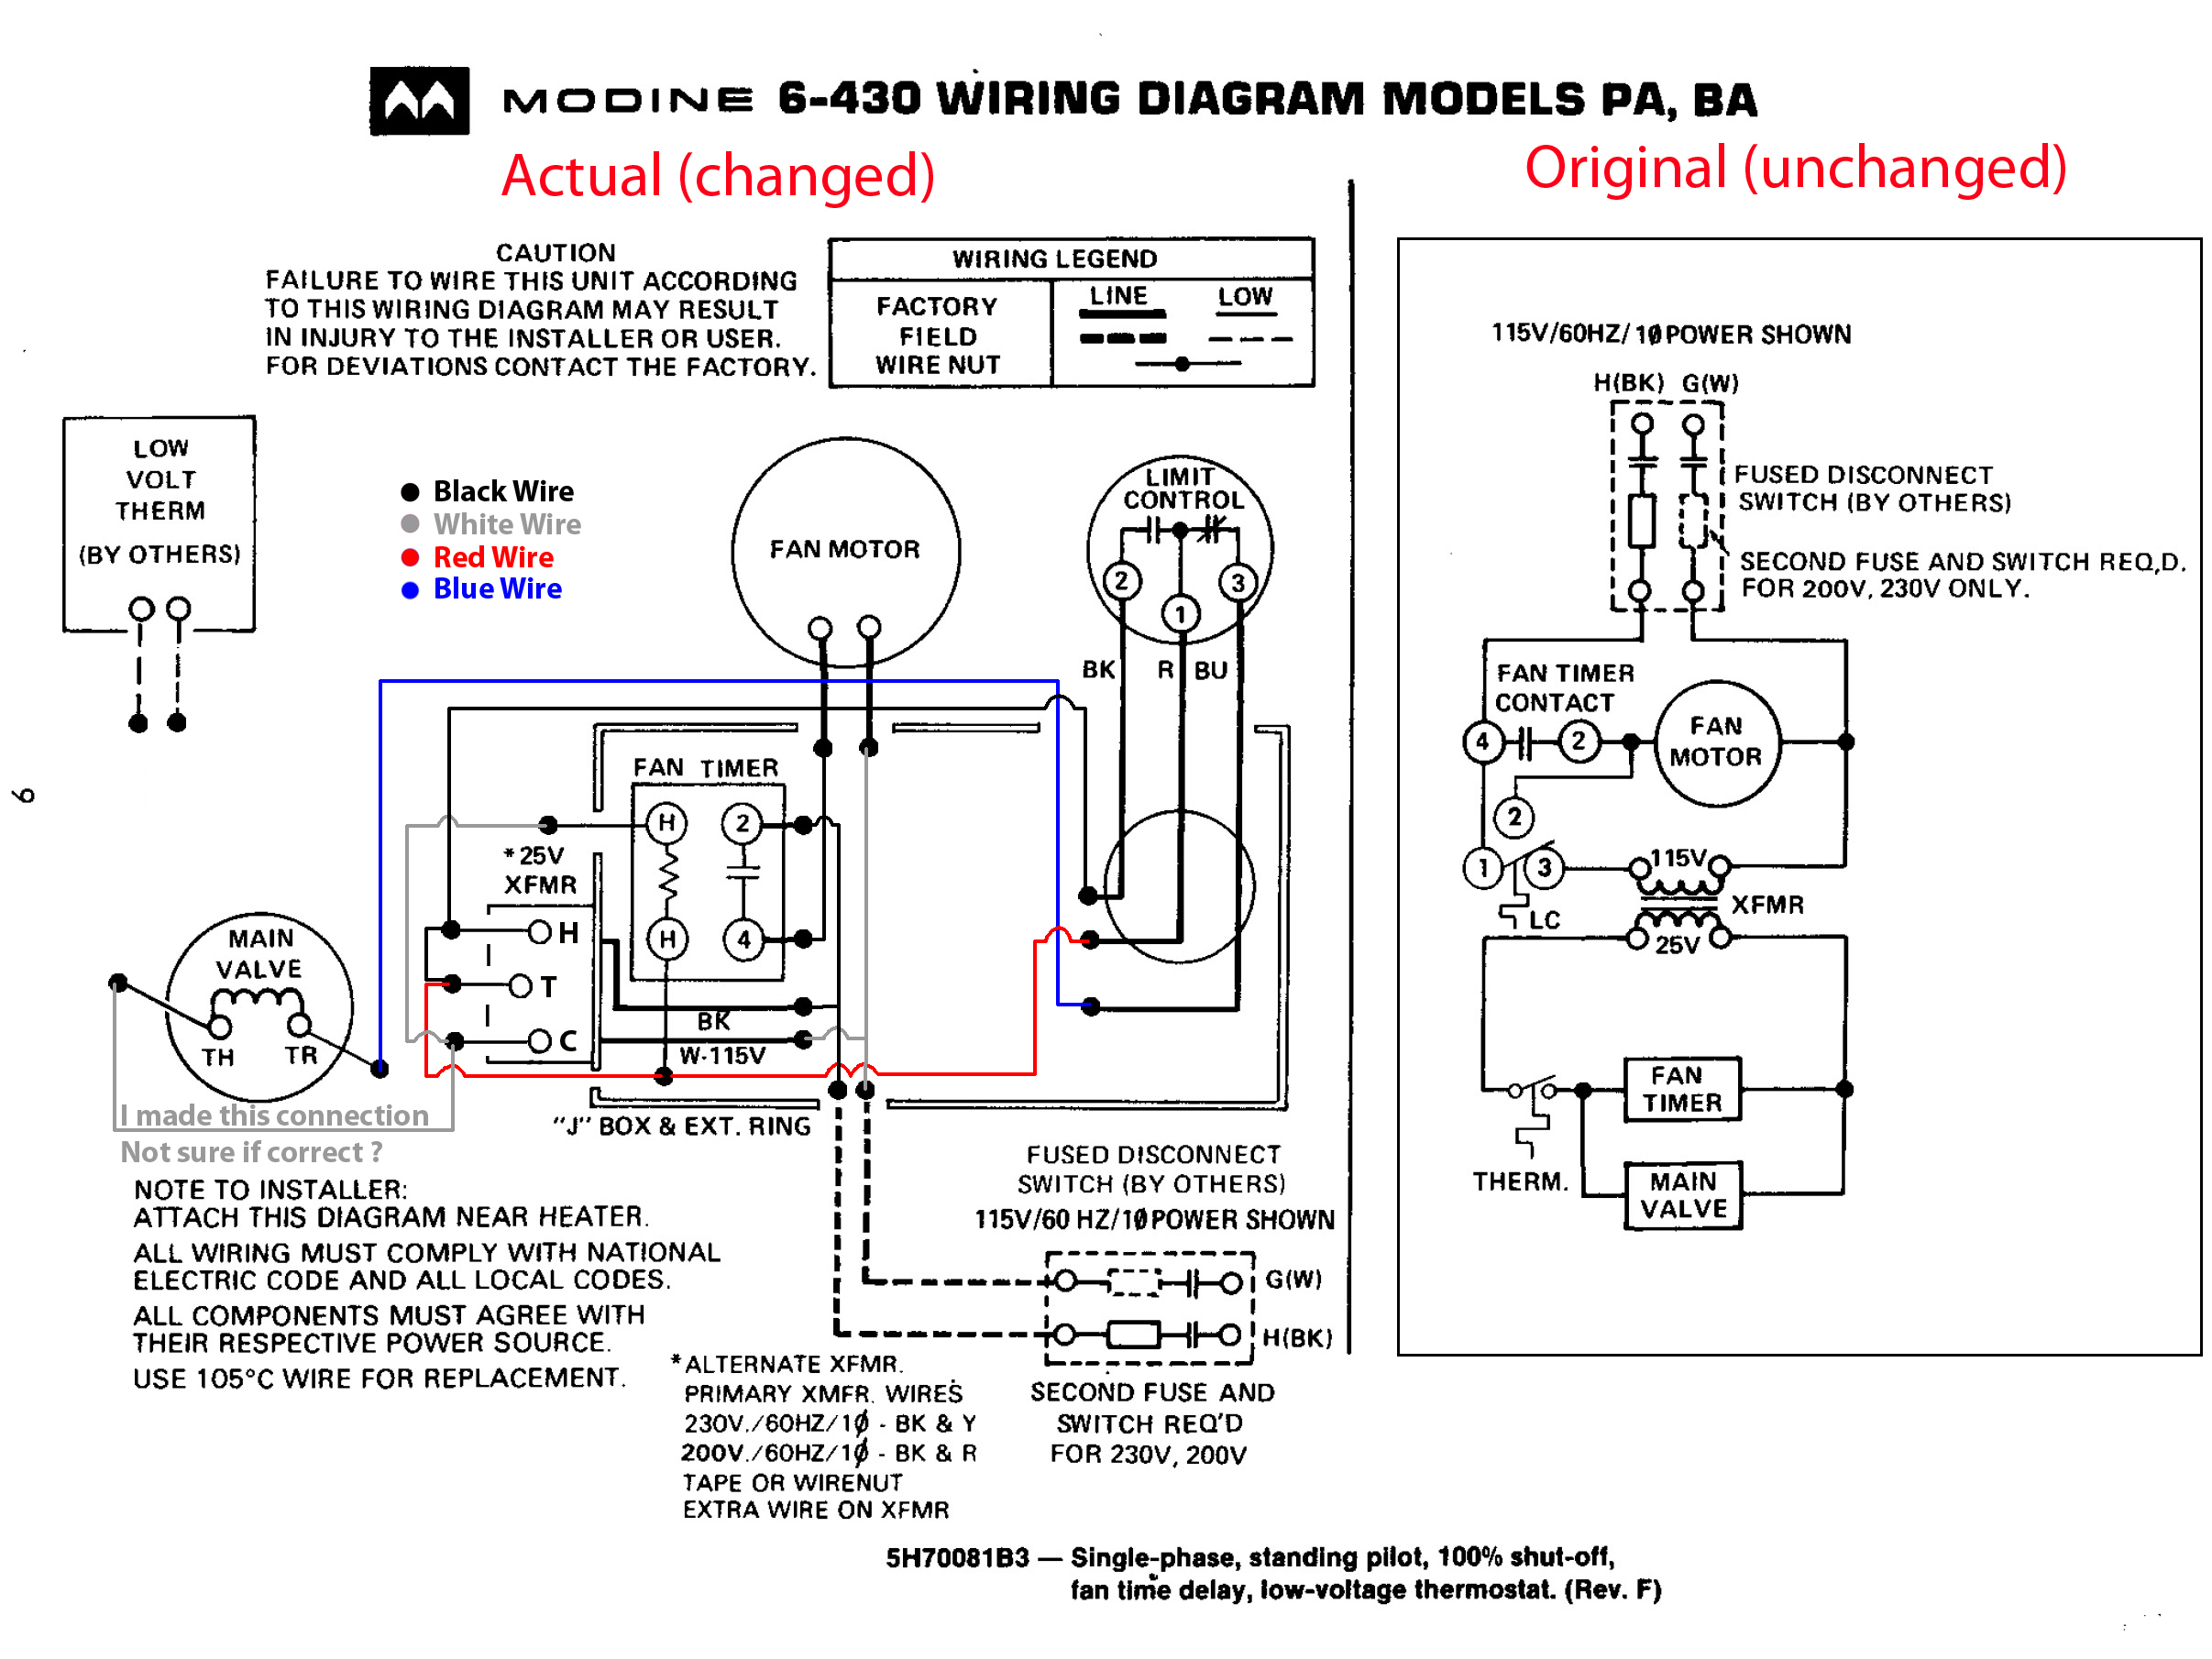 modine heater wiring diagram Collection-Modine Gas Heater Wiring Diagram New Beautiful Gas Heater Wiring Diagram Inspiration 10-h